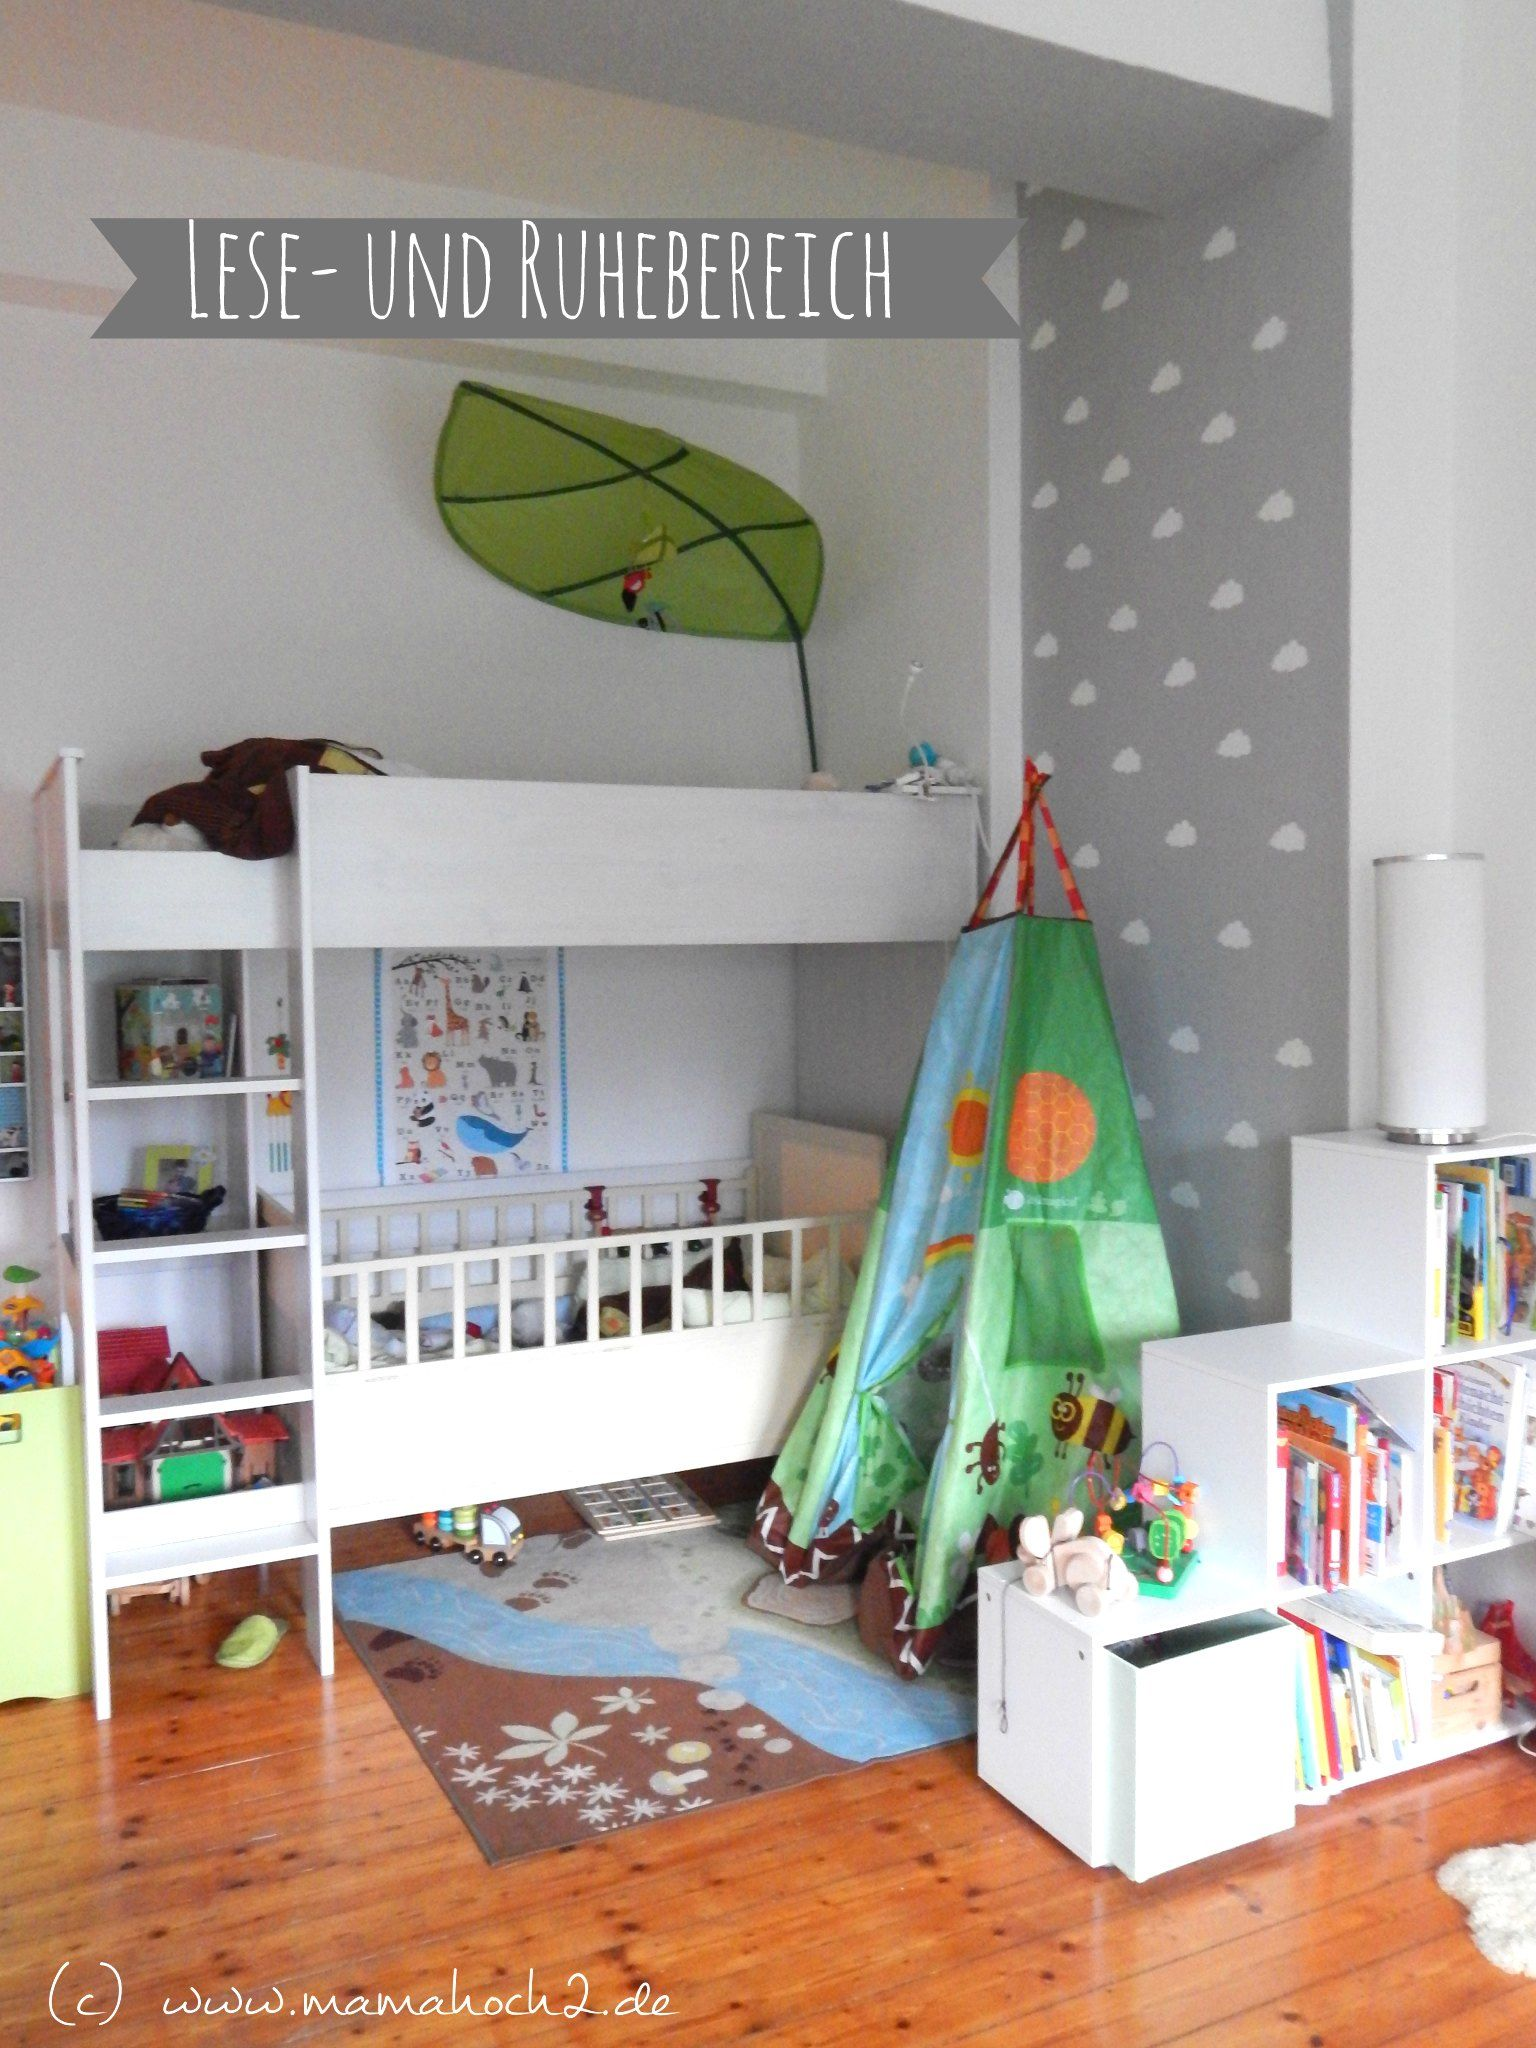 kinderzimmer f r zwei lausebengel kinderzimmerideen interior kids spaces room. Black Bedroom Furniture Sets. Home Design Ideas